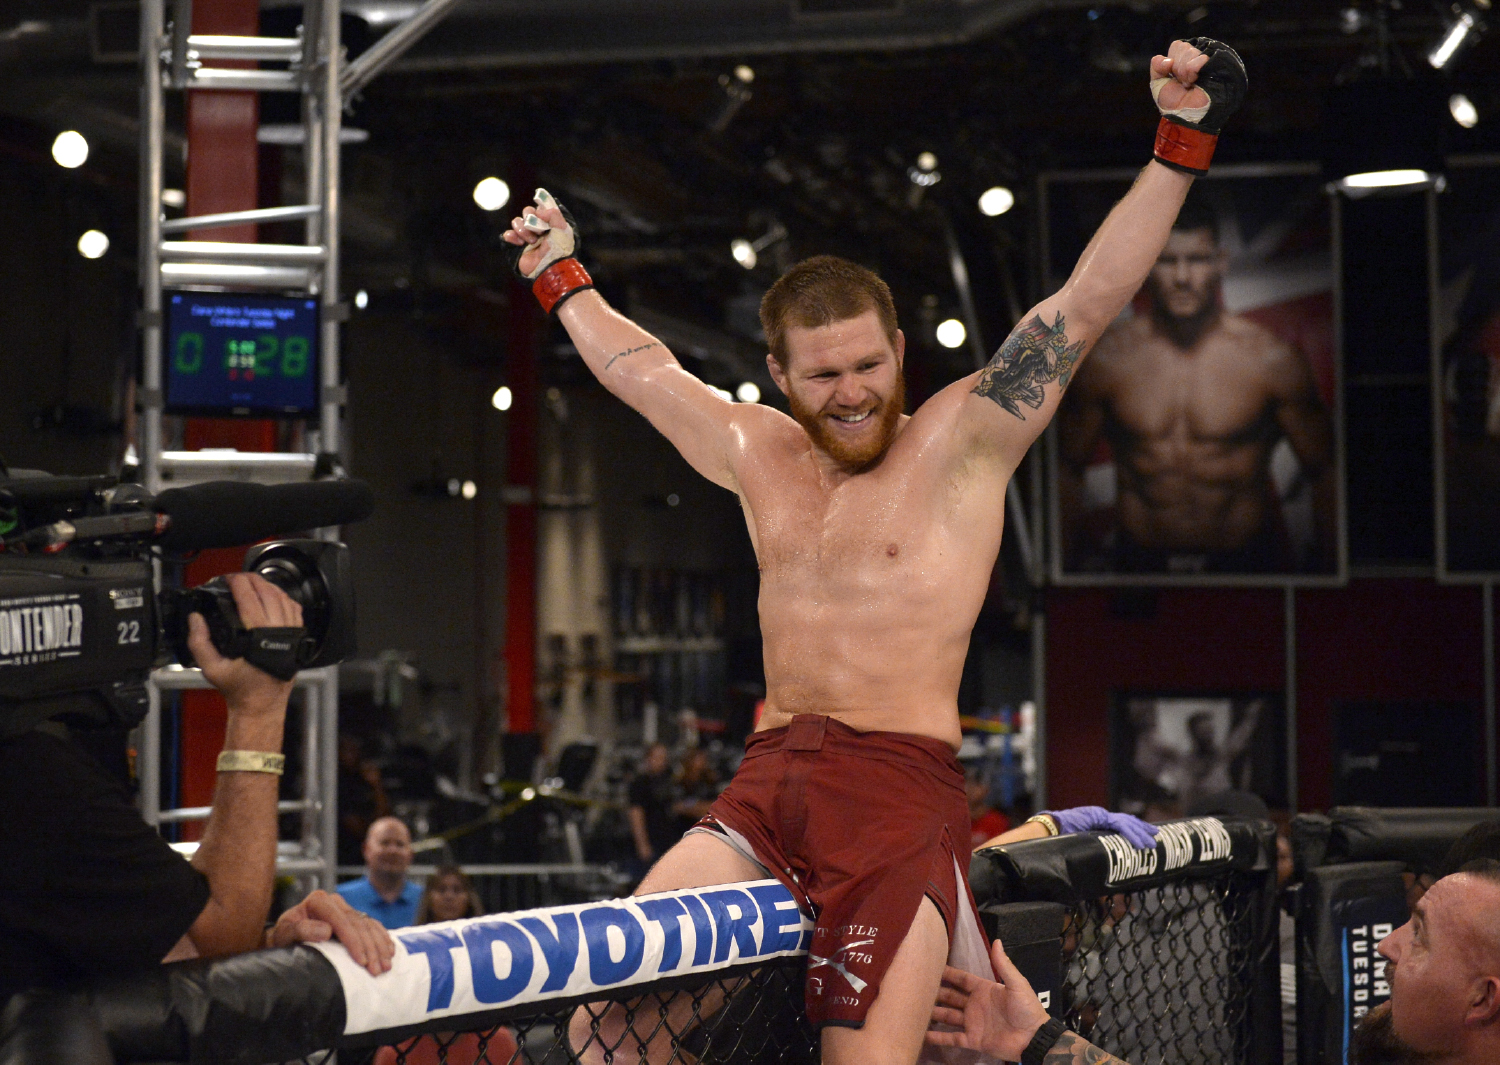 Matt Frevola celebrates after defeating Luke Flores by submission in their lightweight bout during Dana White's Tuesday Night Contender Series at the TUF Gym on August 29, 2017 in Las Vegas, Nevada. (Photo by Brandon Magnus/DWTNCS)